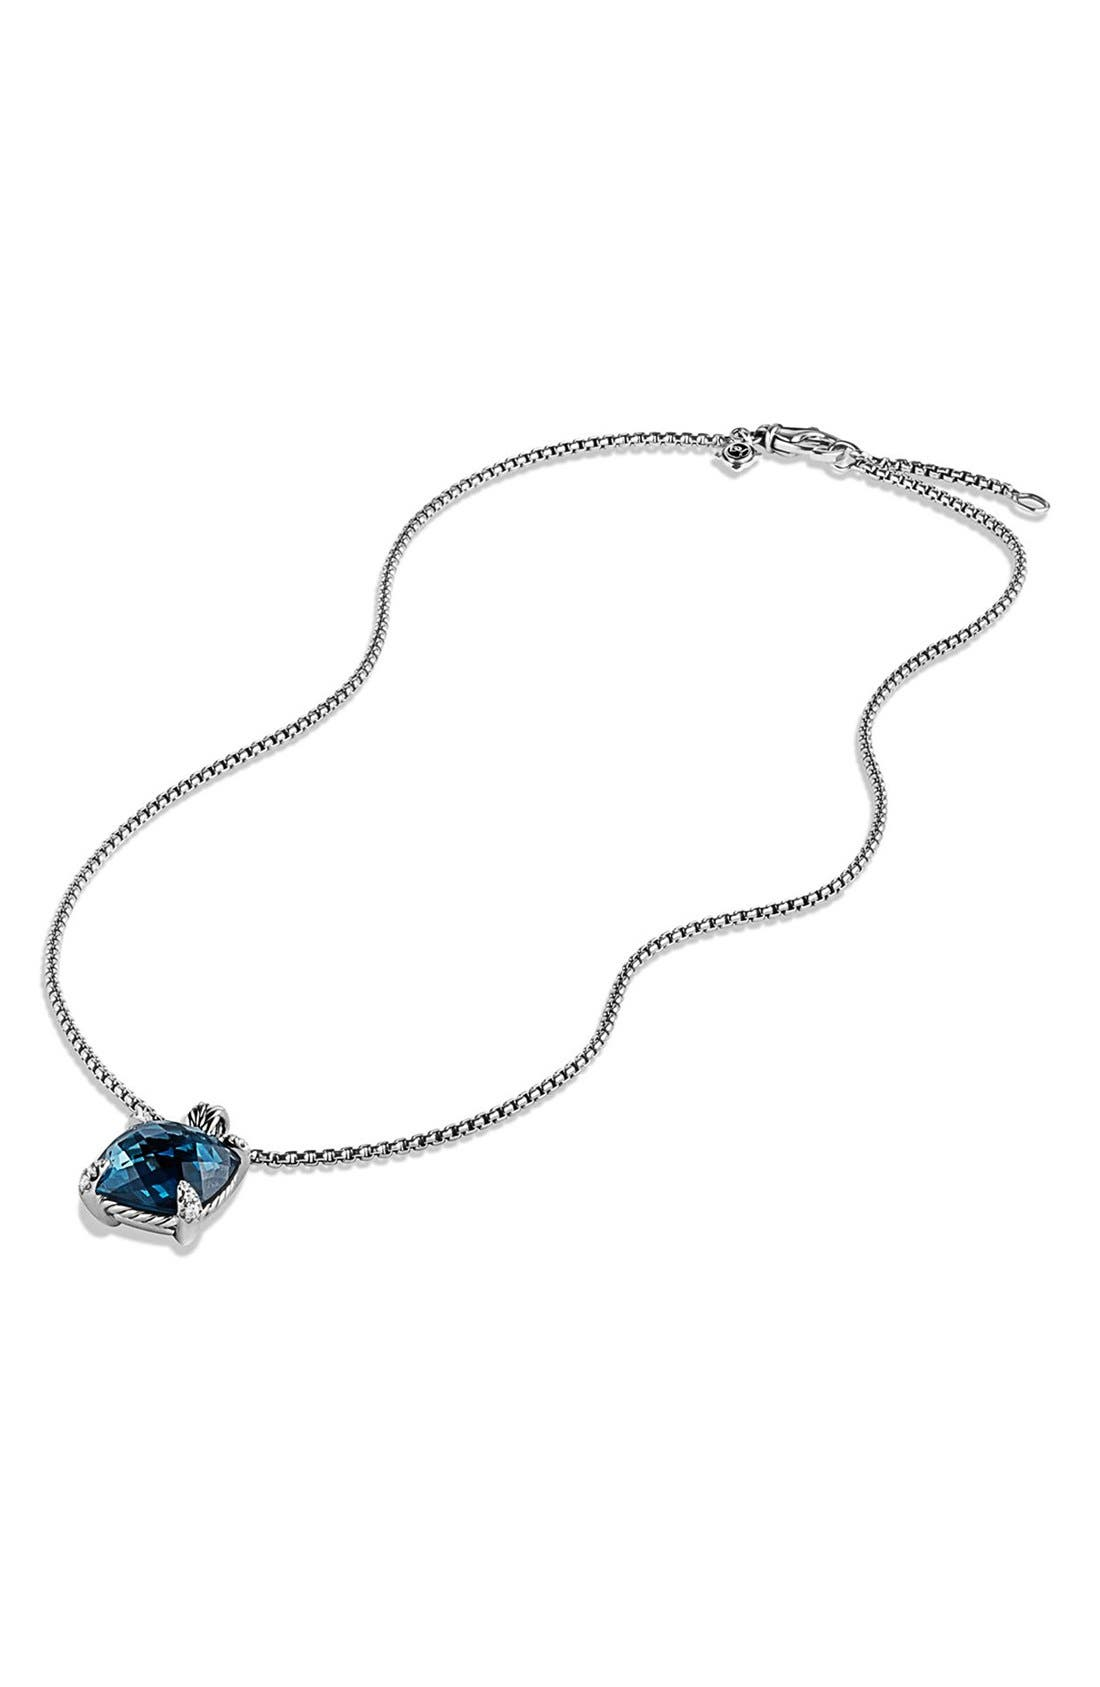 'Châtelaine' Pendant Necklace with Semiprecious Stone and Diamonds,                             Alternate thumbnail 4, color,                             SILVER/ HAMPTON BLUE TOPAZ